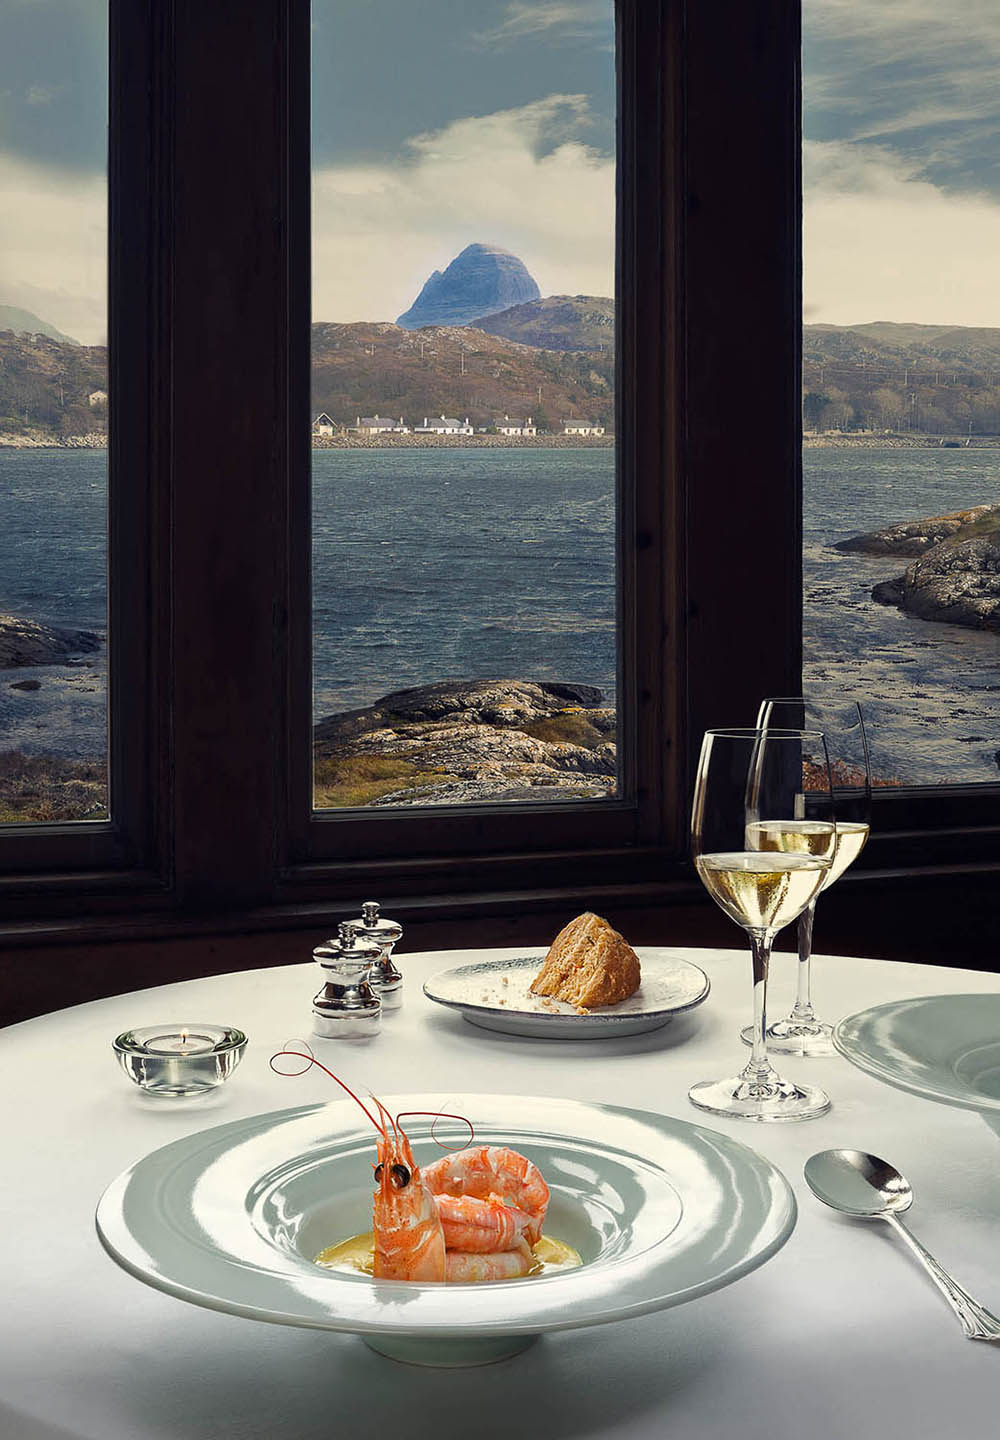 Prawns at Michelin starred The Albannach -  Iconic Suilven provides an ideal backdrop in this Scottish Government commissioned image.